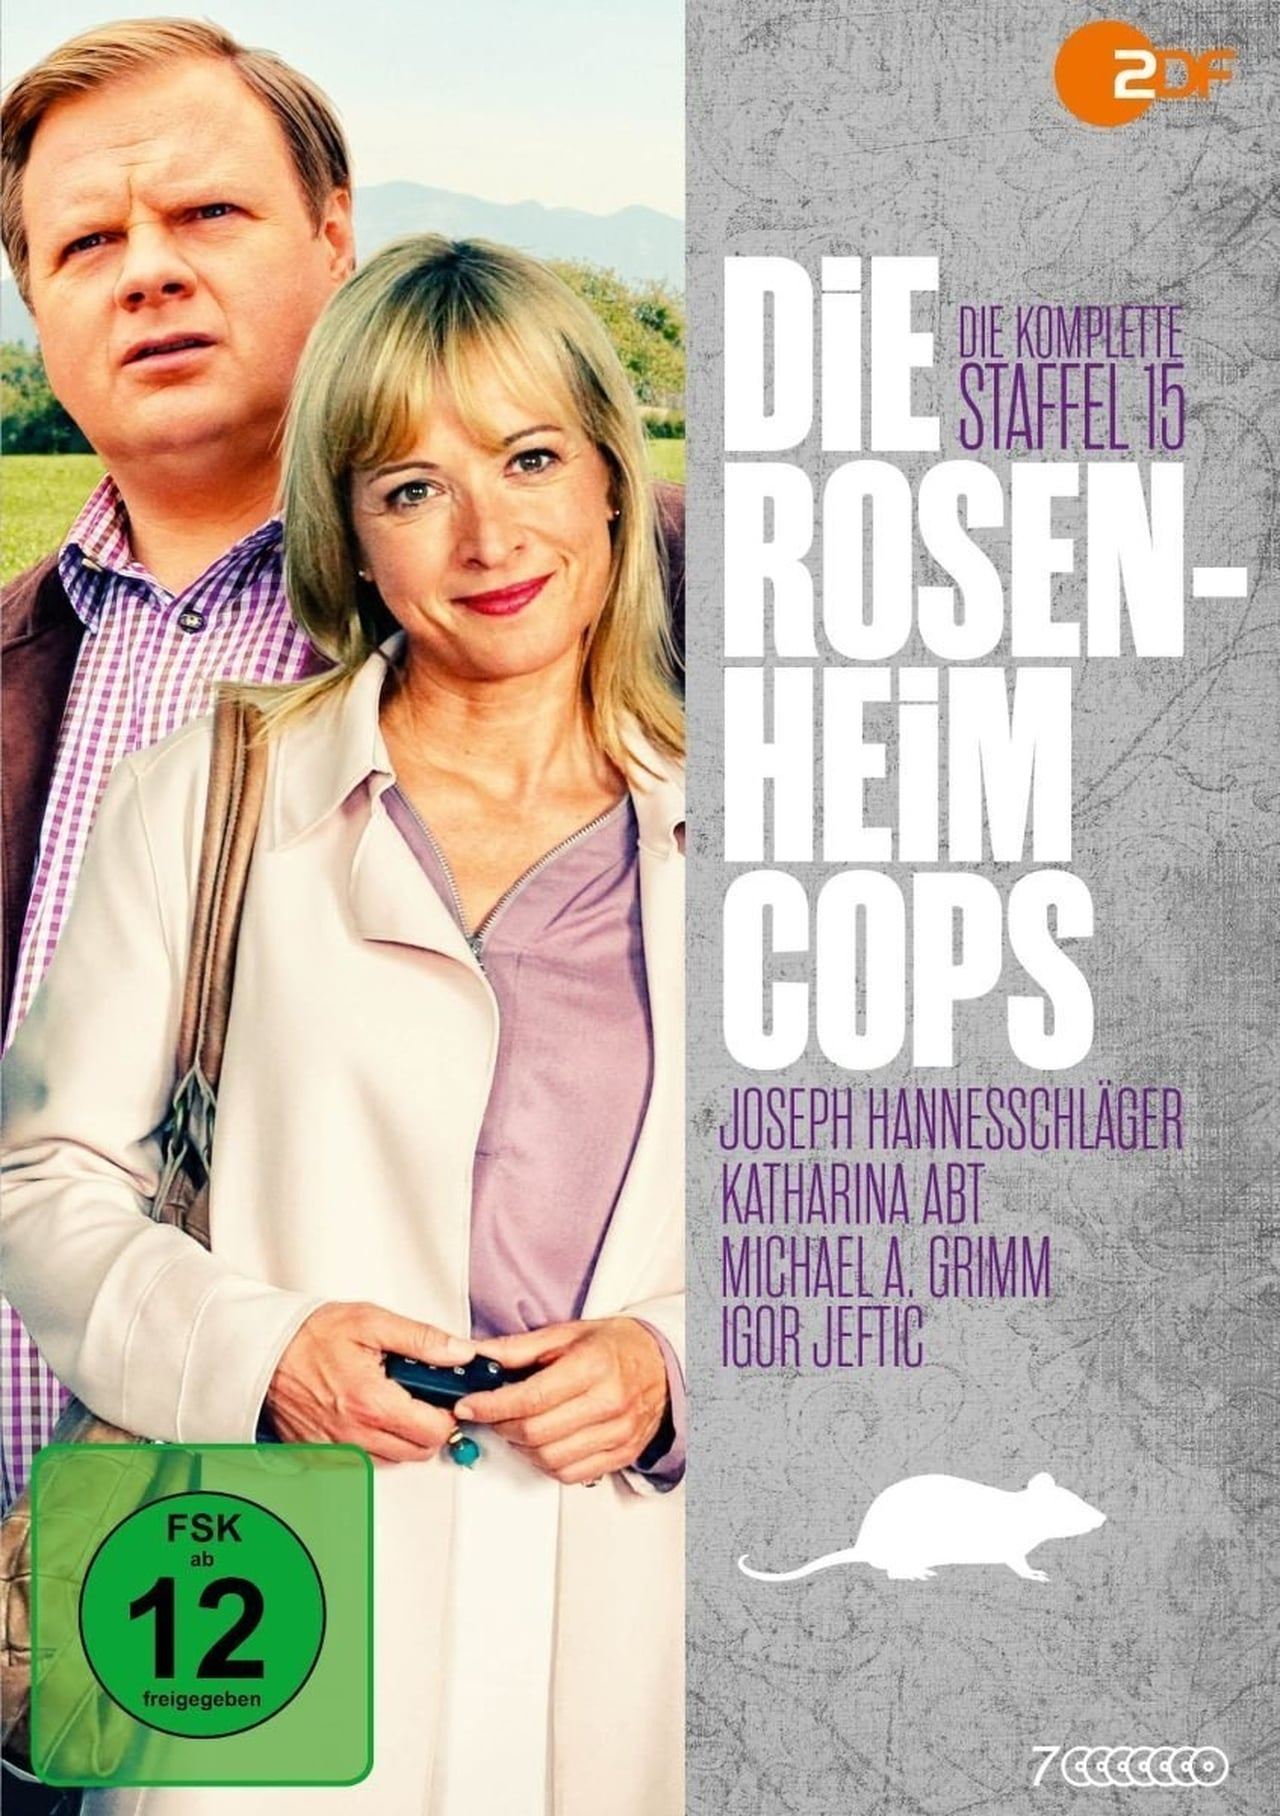 Watch The Rosenheim Cops Season 15 Online